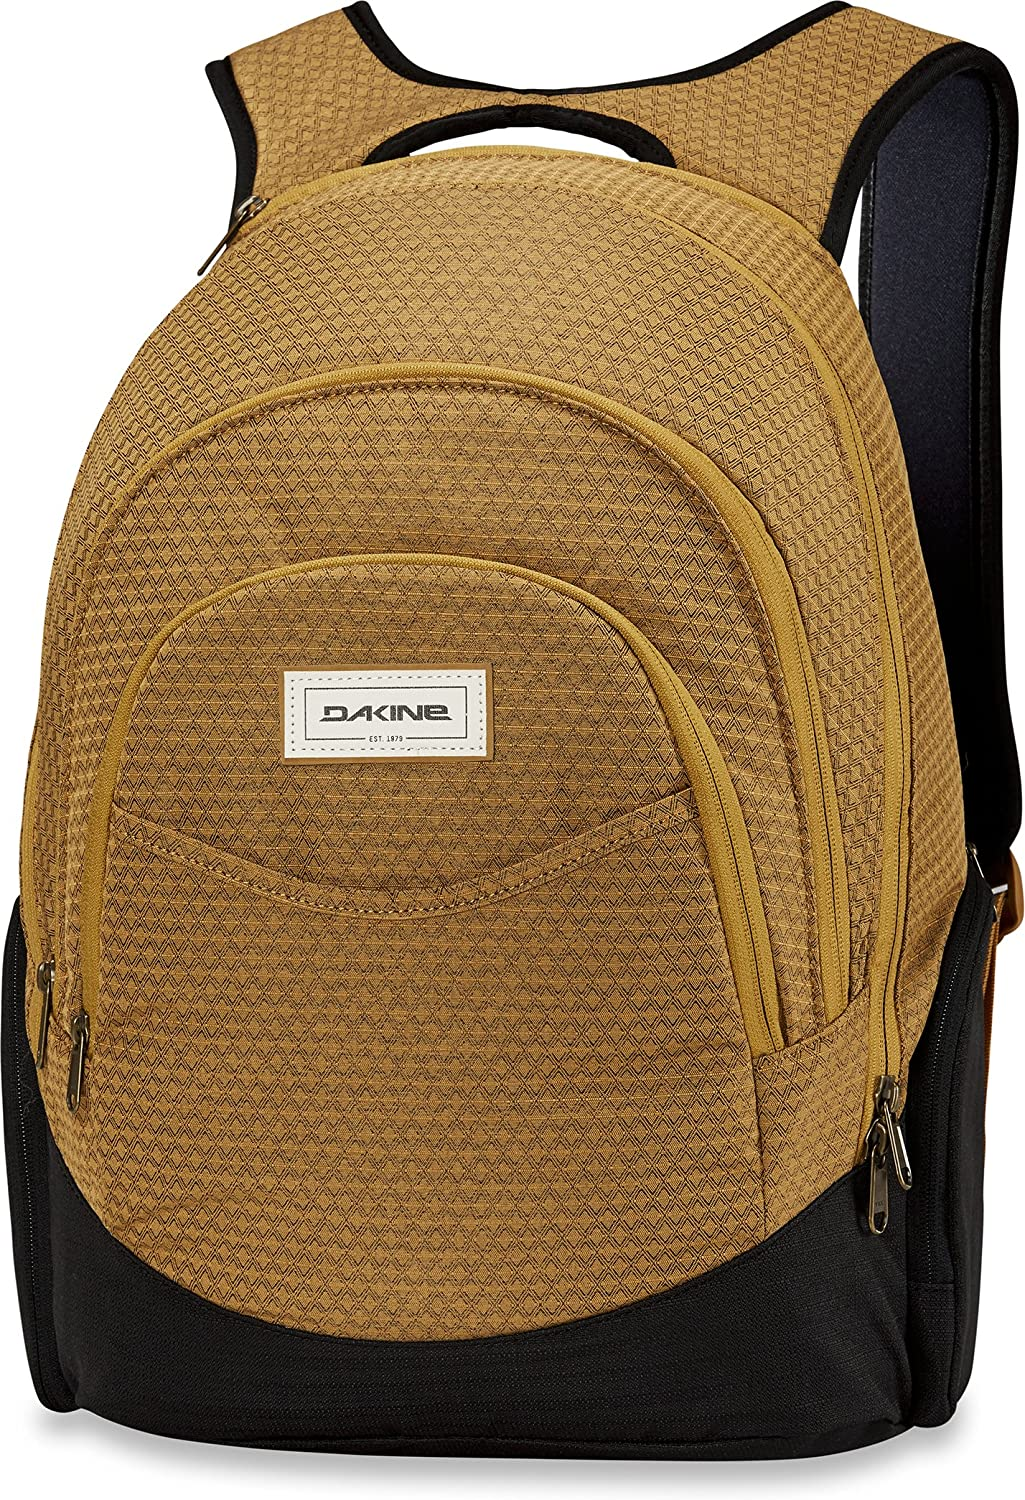 Dakine Prom Backpack 25L Tofino One Size